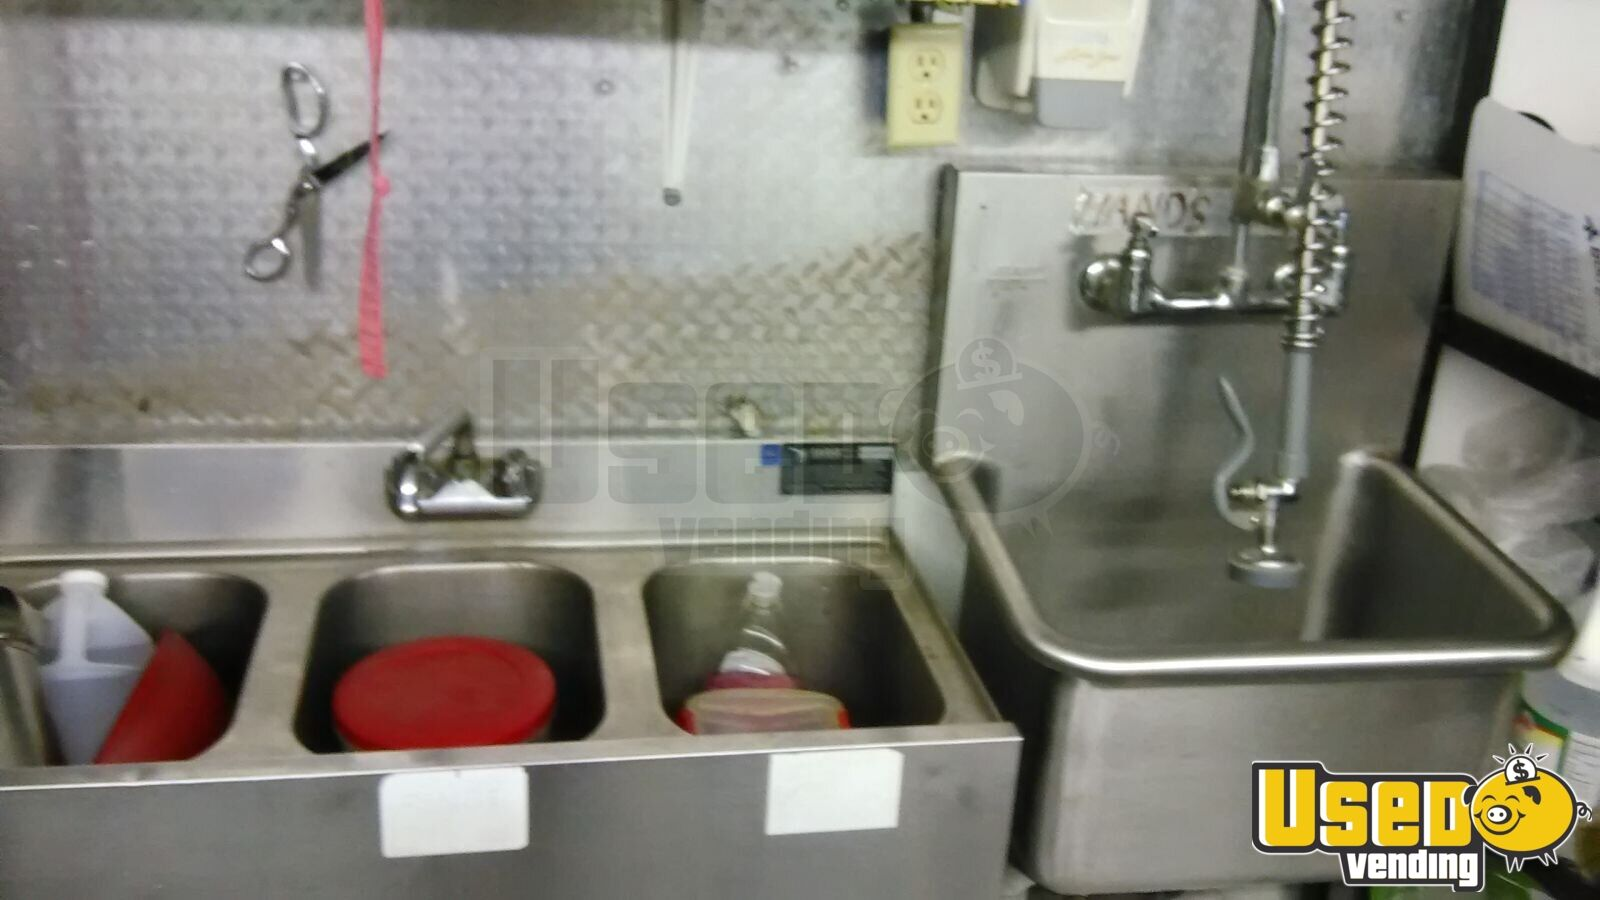 1990 Food Concession Trailer Concession Trailer Refrigerator Ohio for Sale - 7